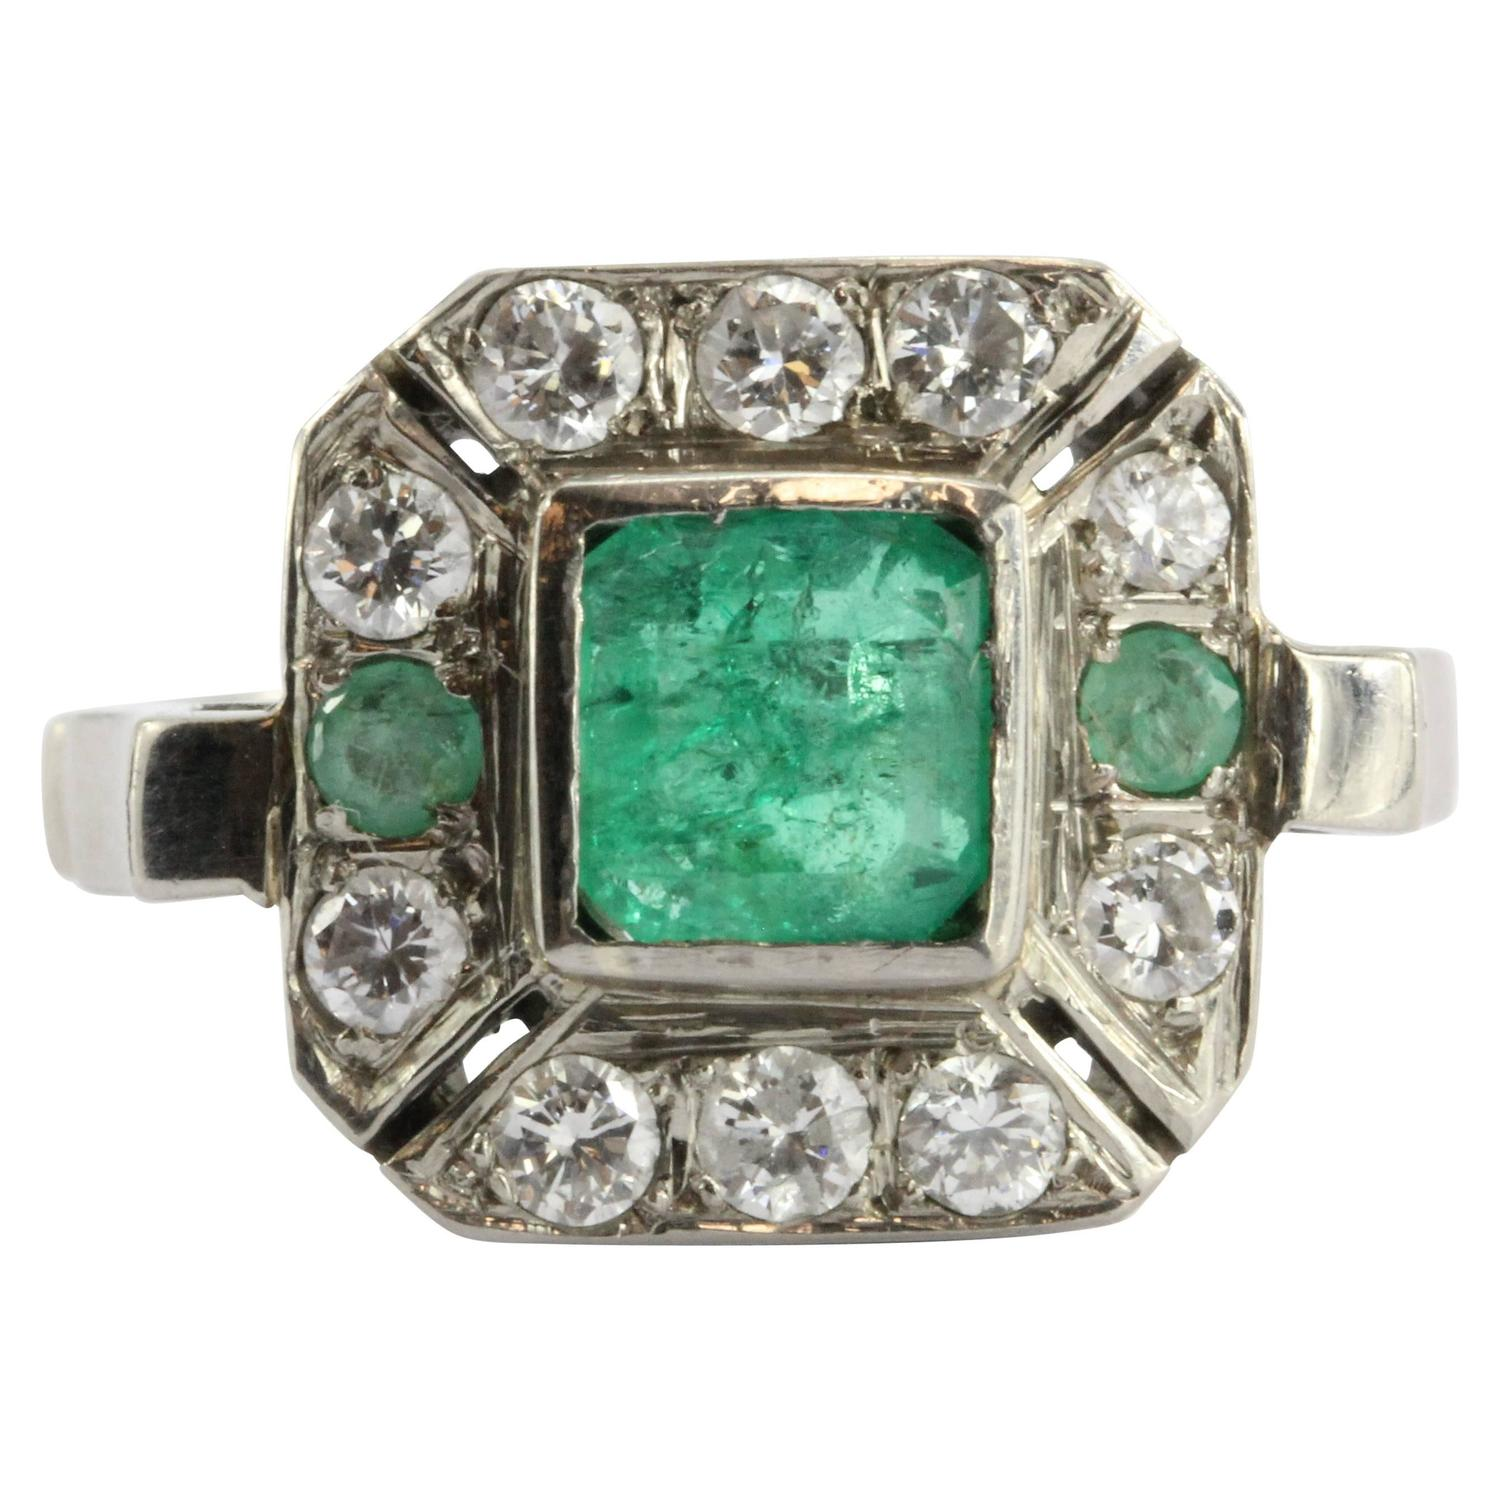 Art Deco Emerald Diamond Platinum Engagement Ring For Sale at 1stdibs